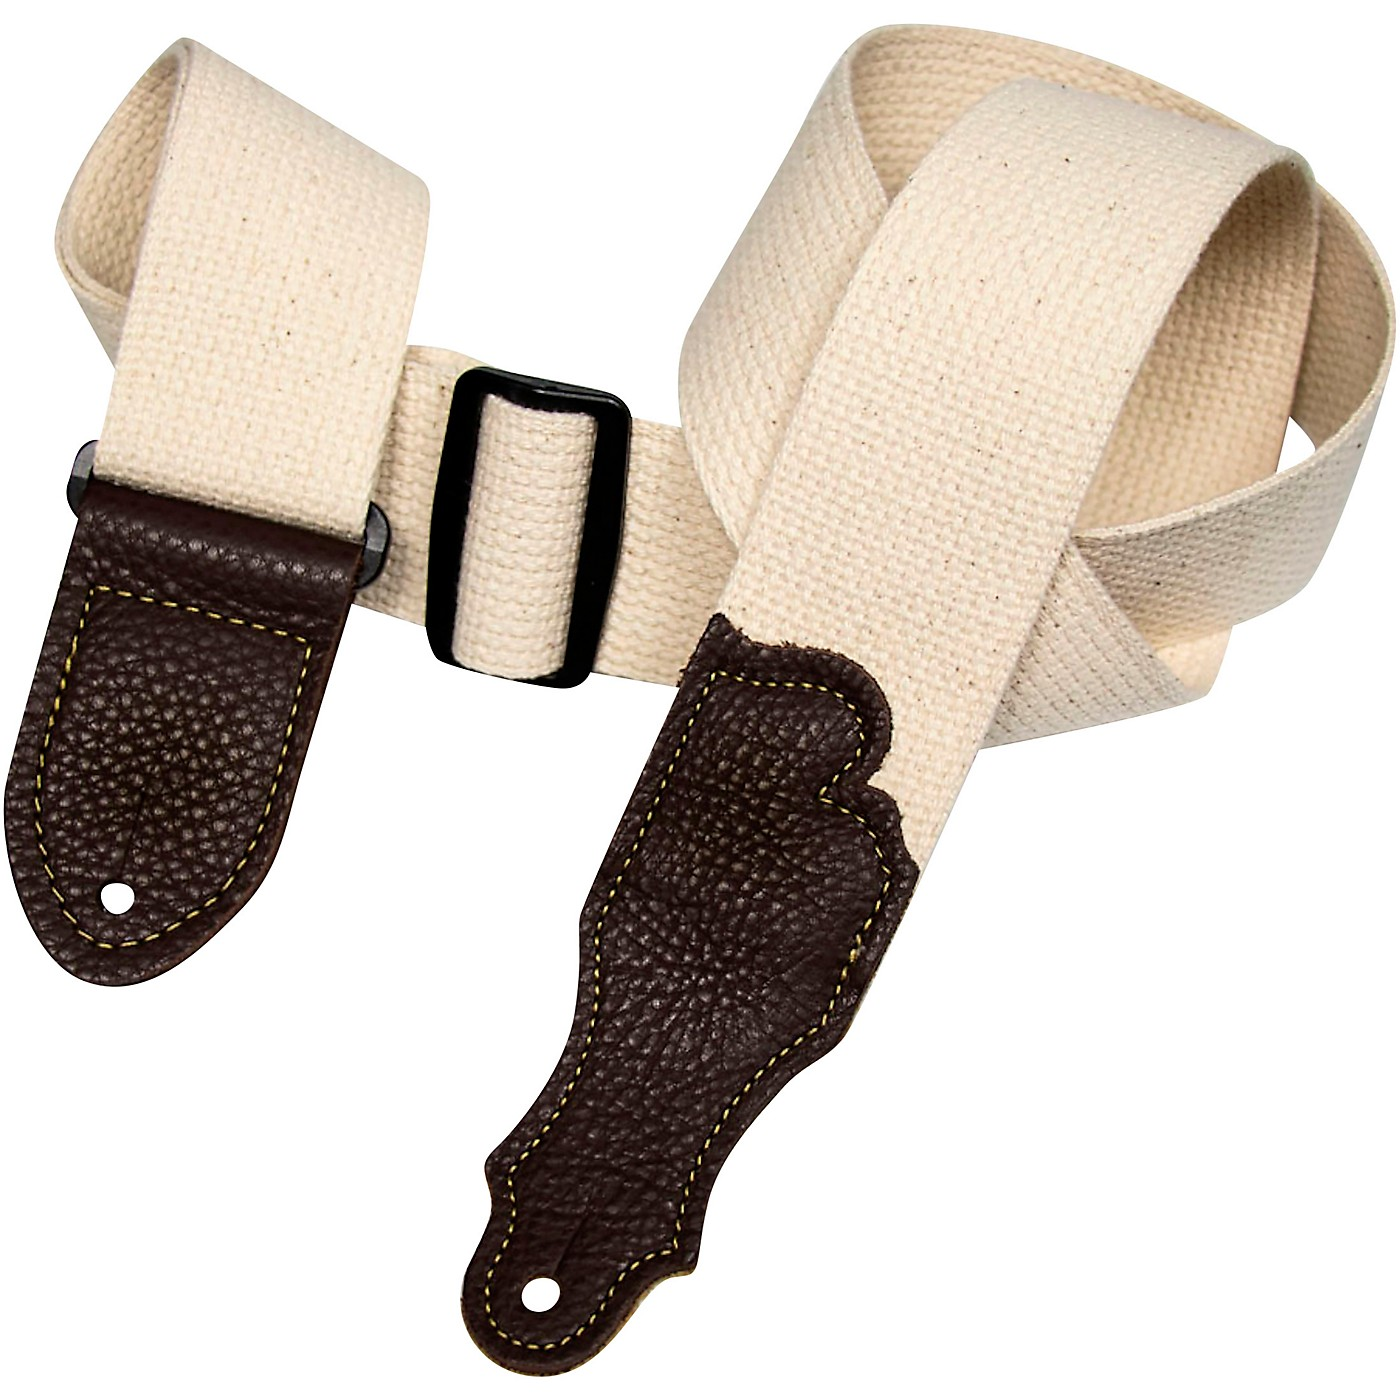 Franklin Strap Cotton Guitar Strap with Glove Leather End Tabs thumbnail